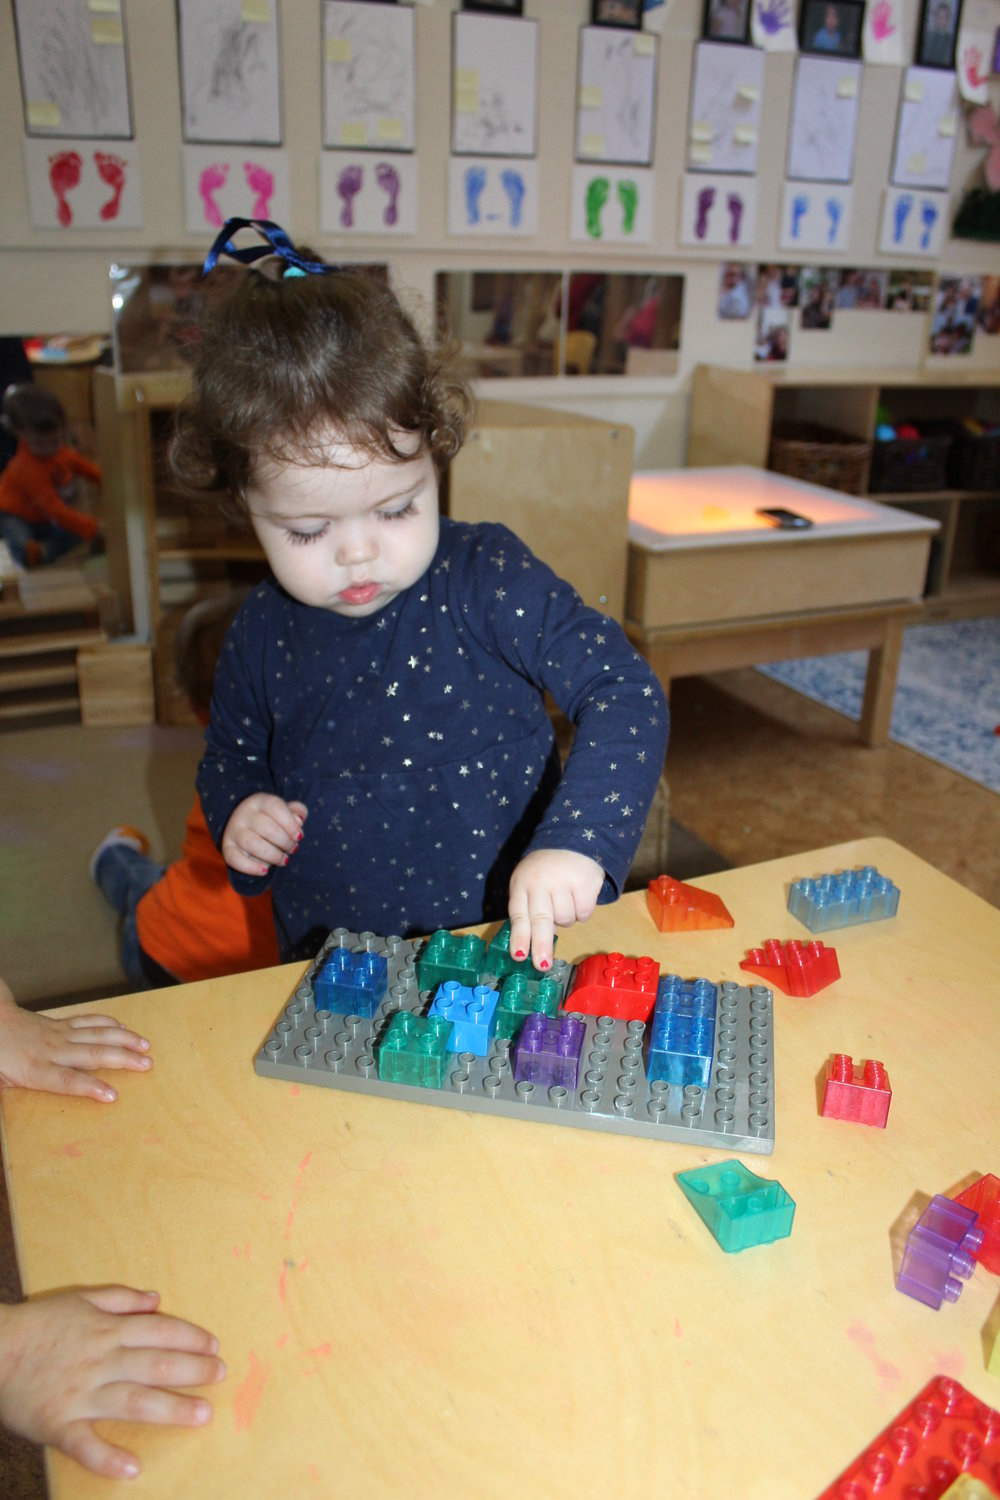 The Lego blocks and plates displayed on the table, Edie observed and interacted with them.   She pressed one square shape onto the Lego plate and continued selecting different color squares unto the plate until it is almost complete. Experimenting and investigating each piece she chooses and rotates to design, helps her create her structure.